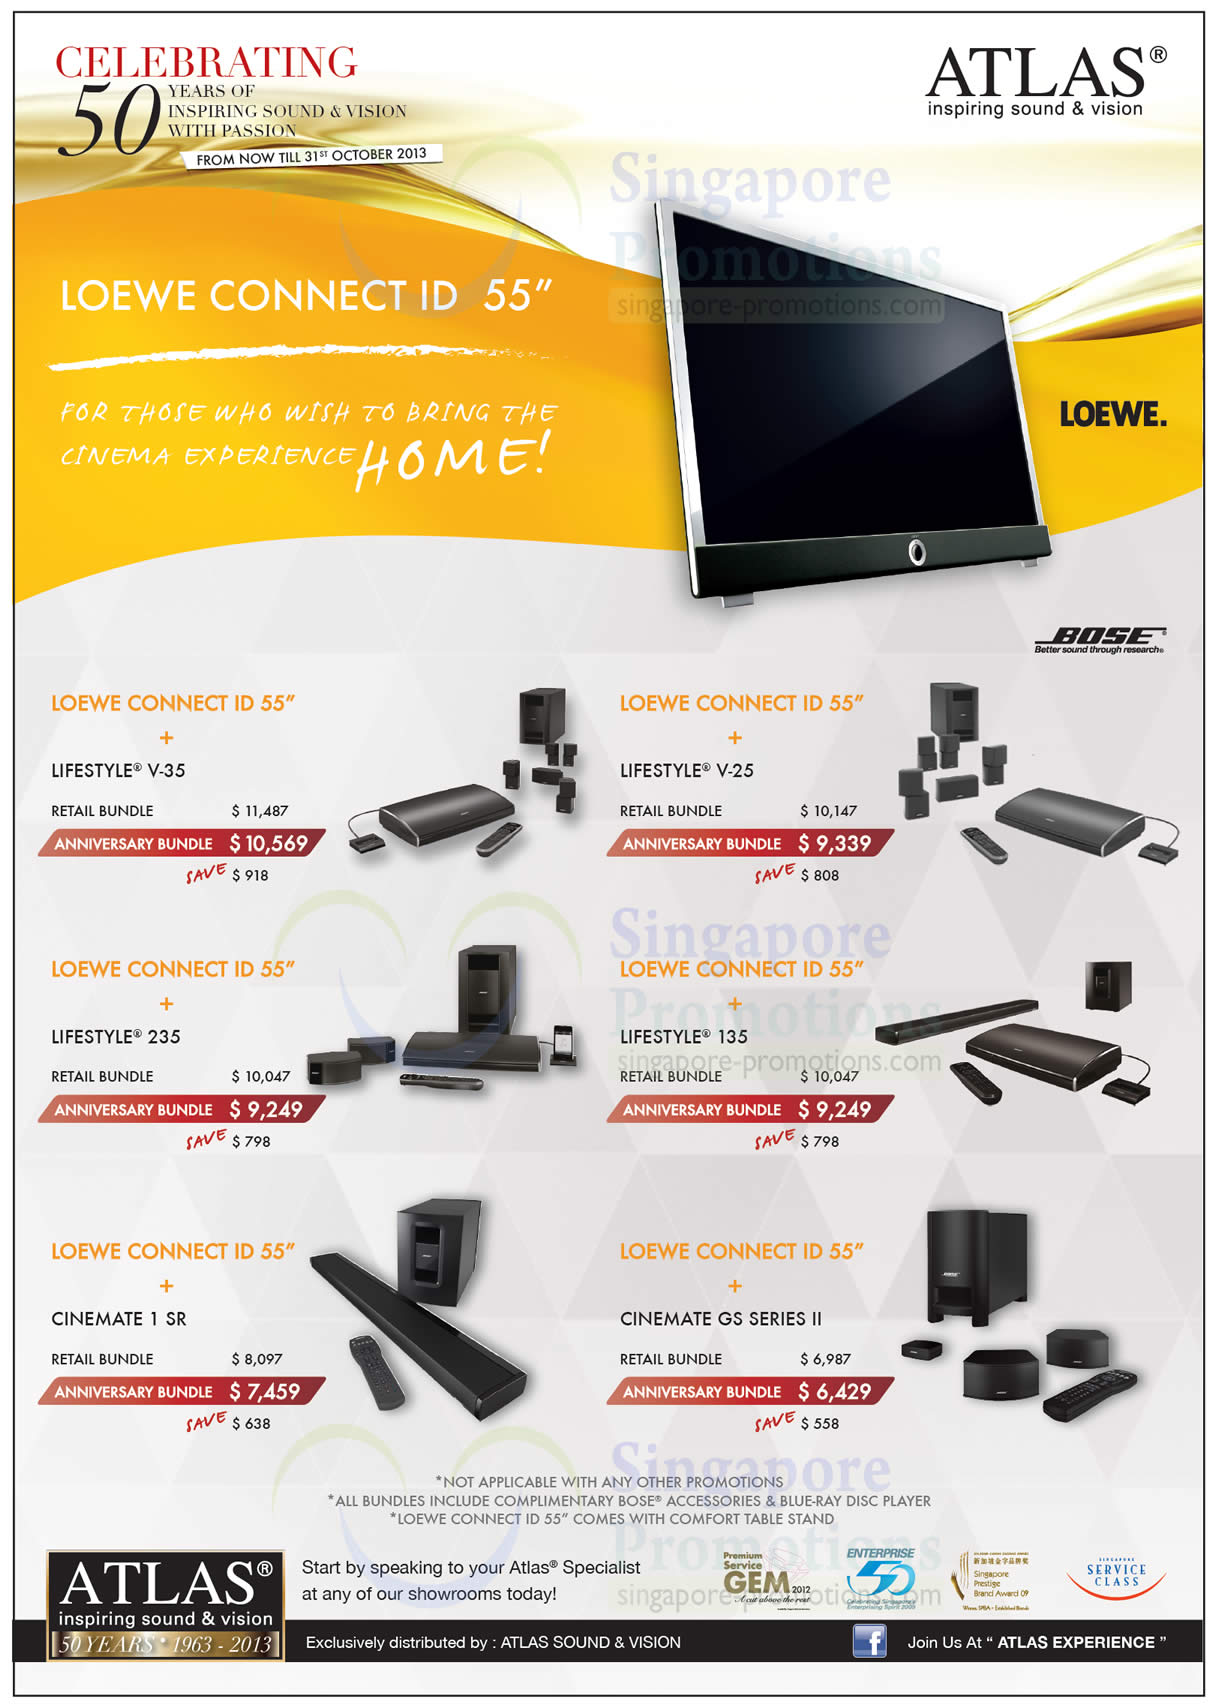 Loewe Connect ID 55 Packages